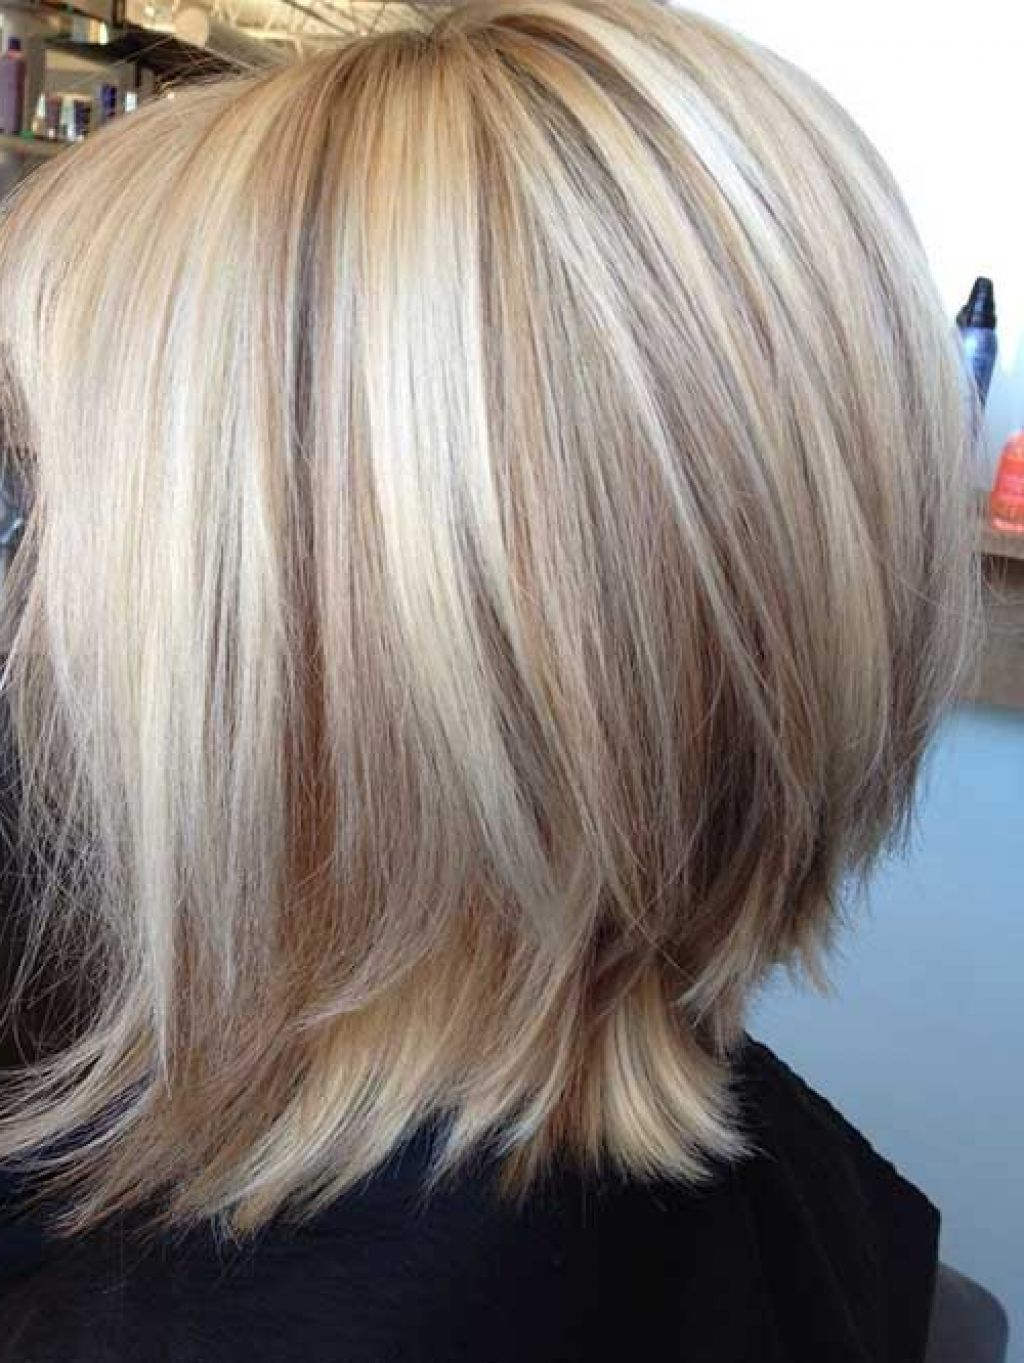 Medium Inverted Bob Hairstyle Omgekeerde Bob Kapsels